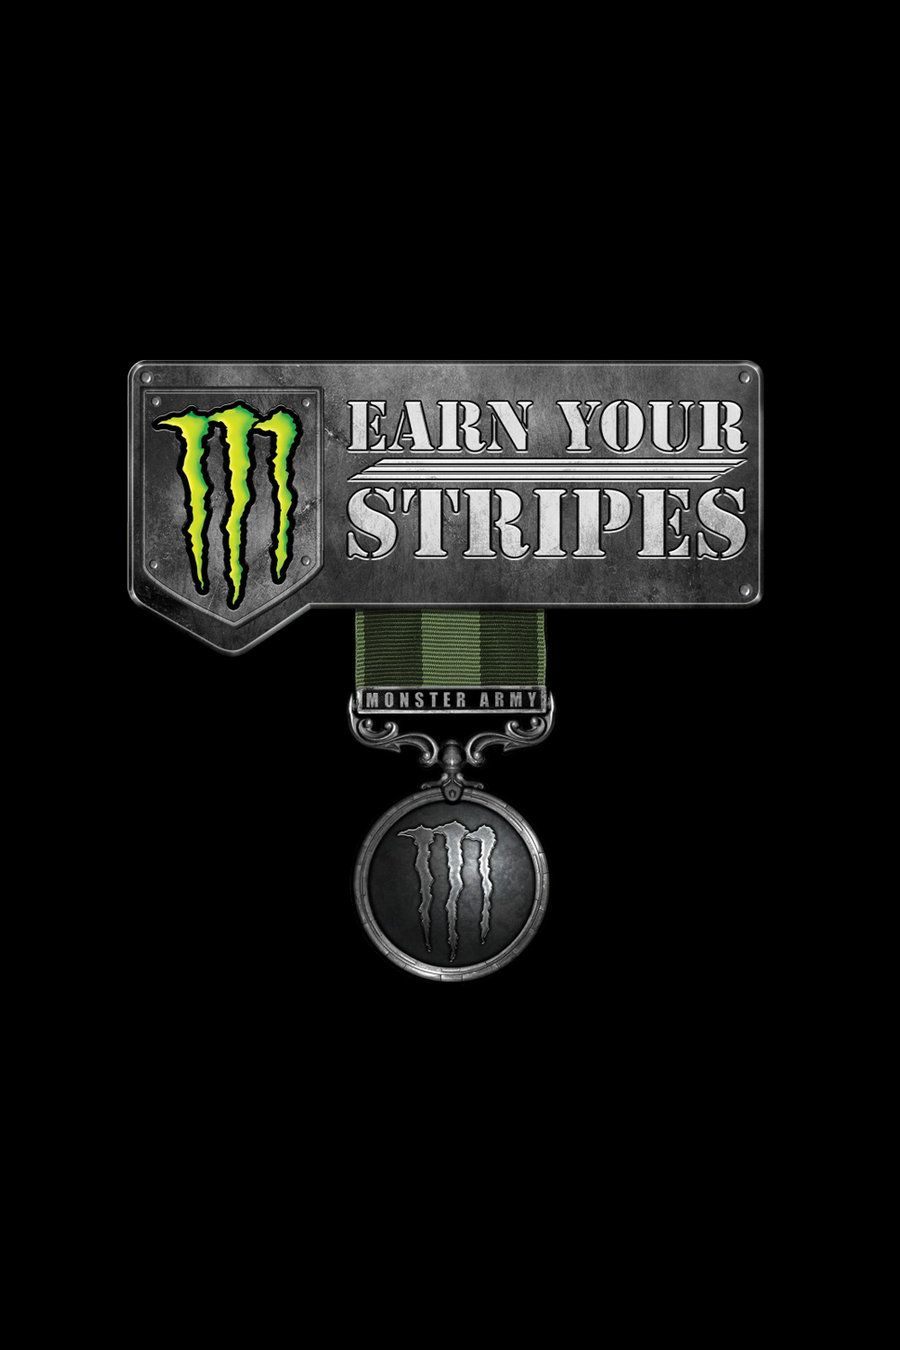 900x1350 Monster Army Earn Your Stripes by chev327fox on DeviantArt